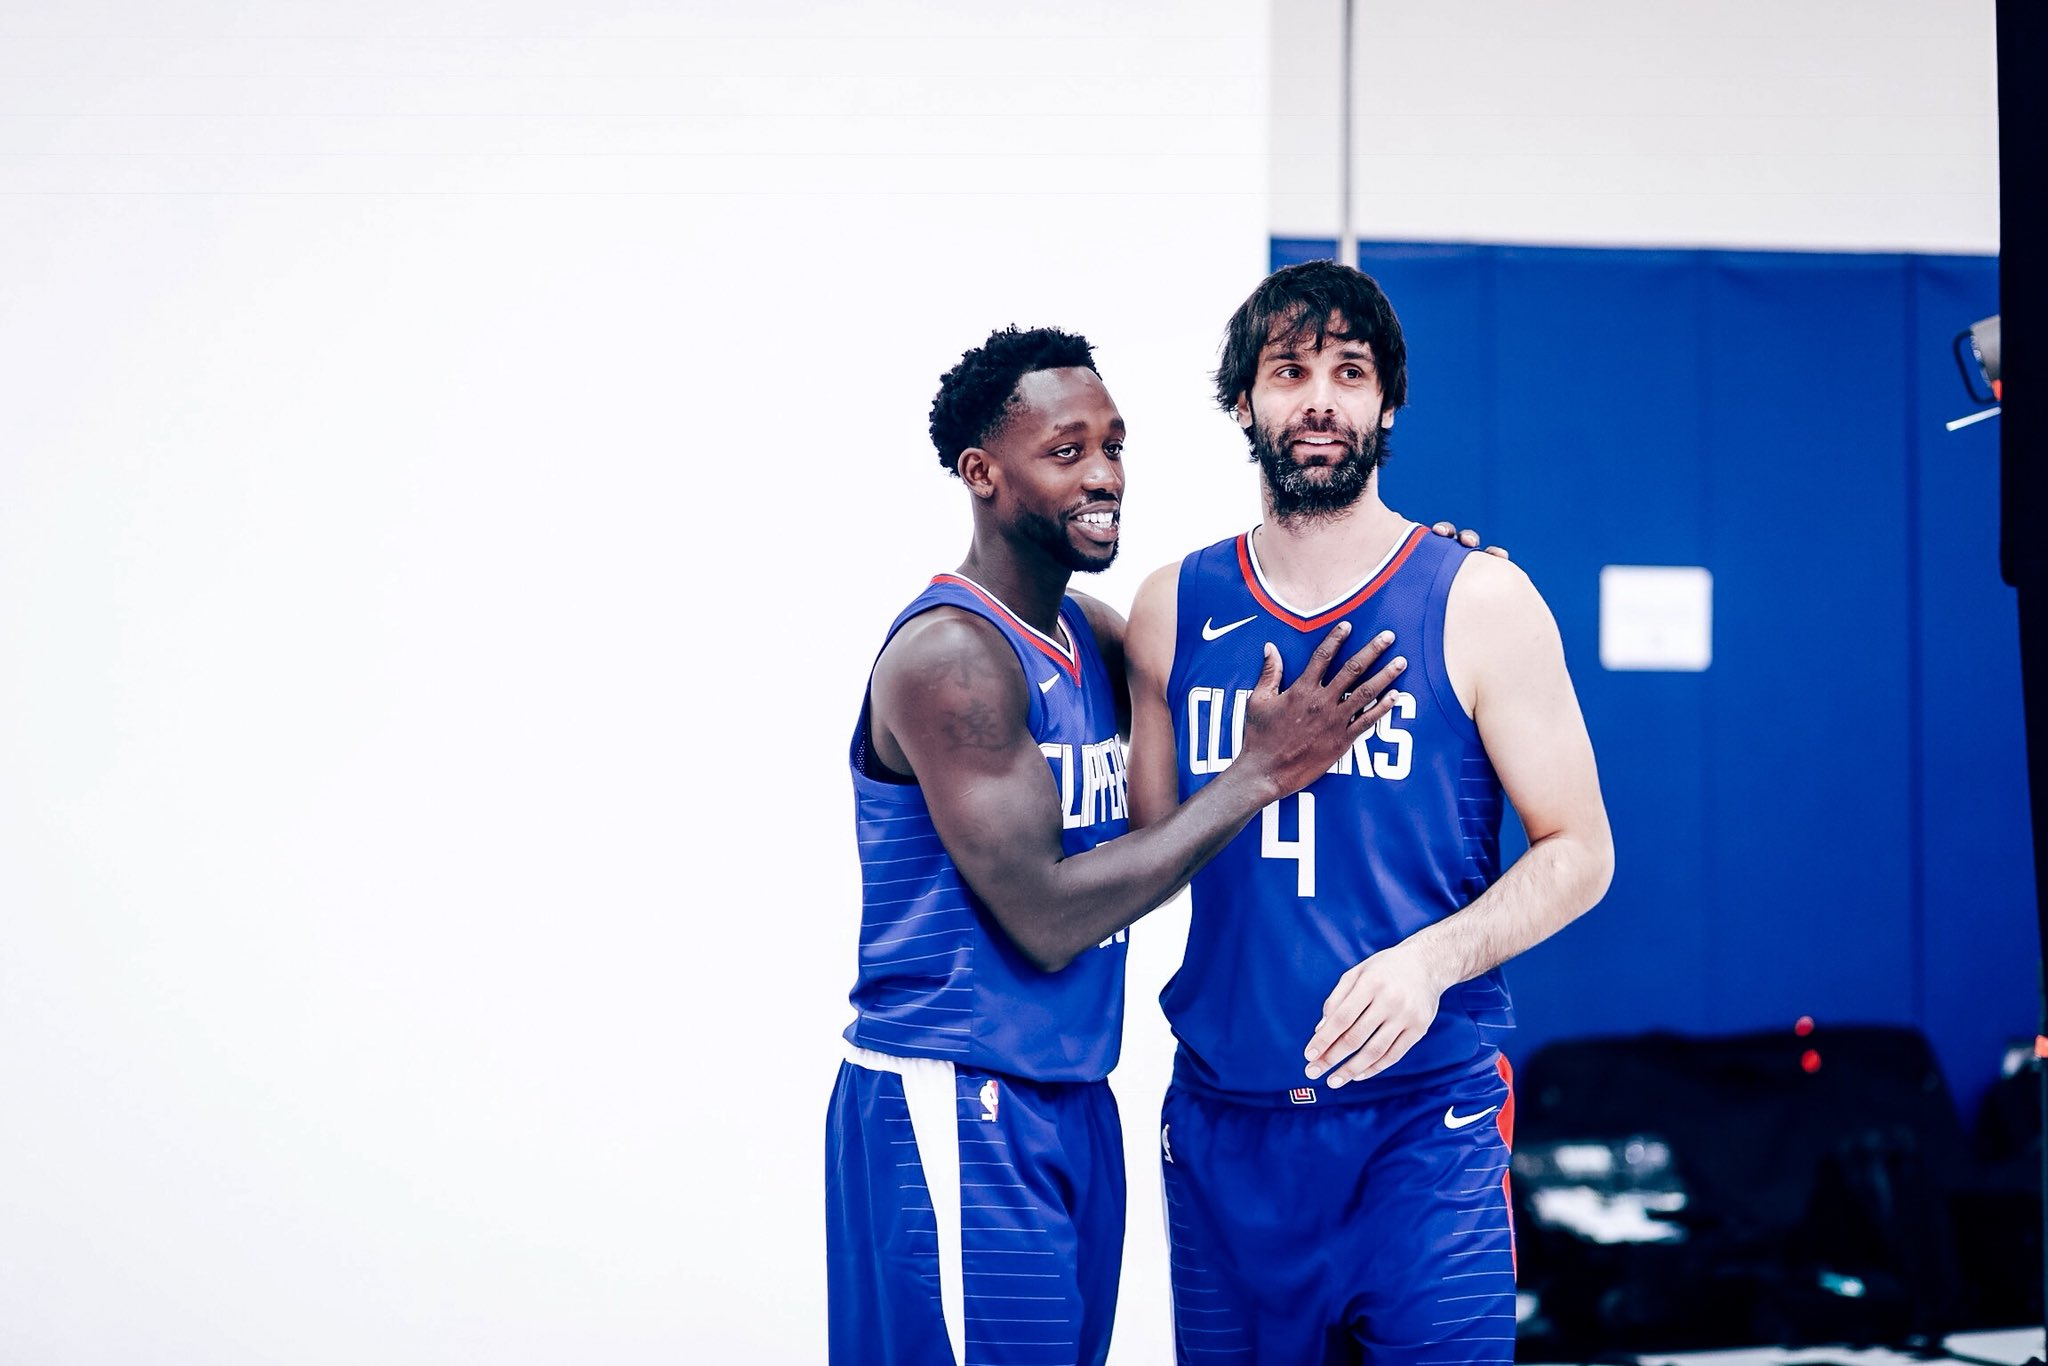 In 2010, Patrick Beverley and Milos Teodosic won the Greek cup. Hello 2017. https://t.co/2S4DKAo3HU